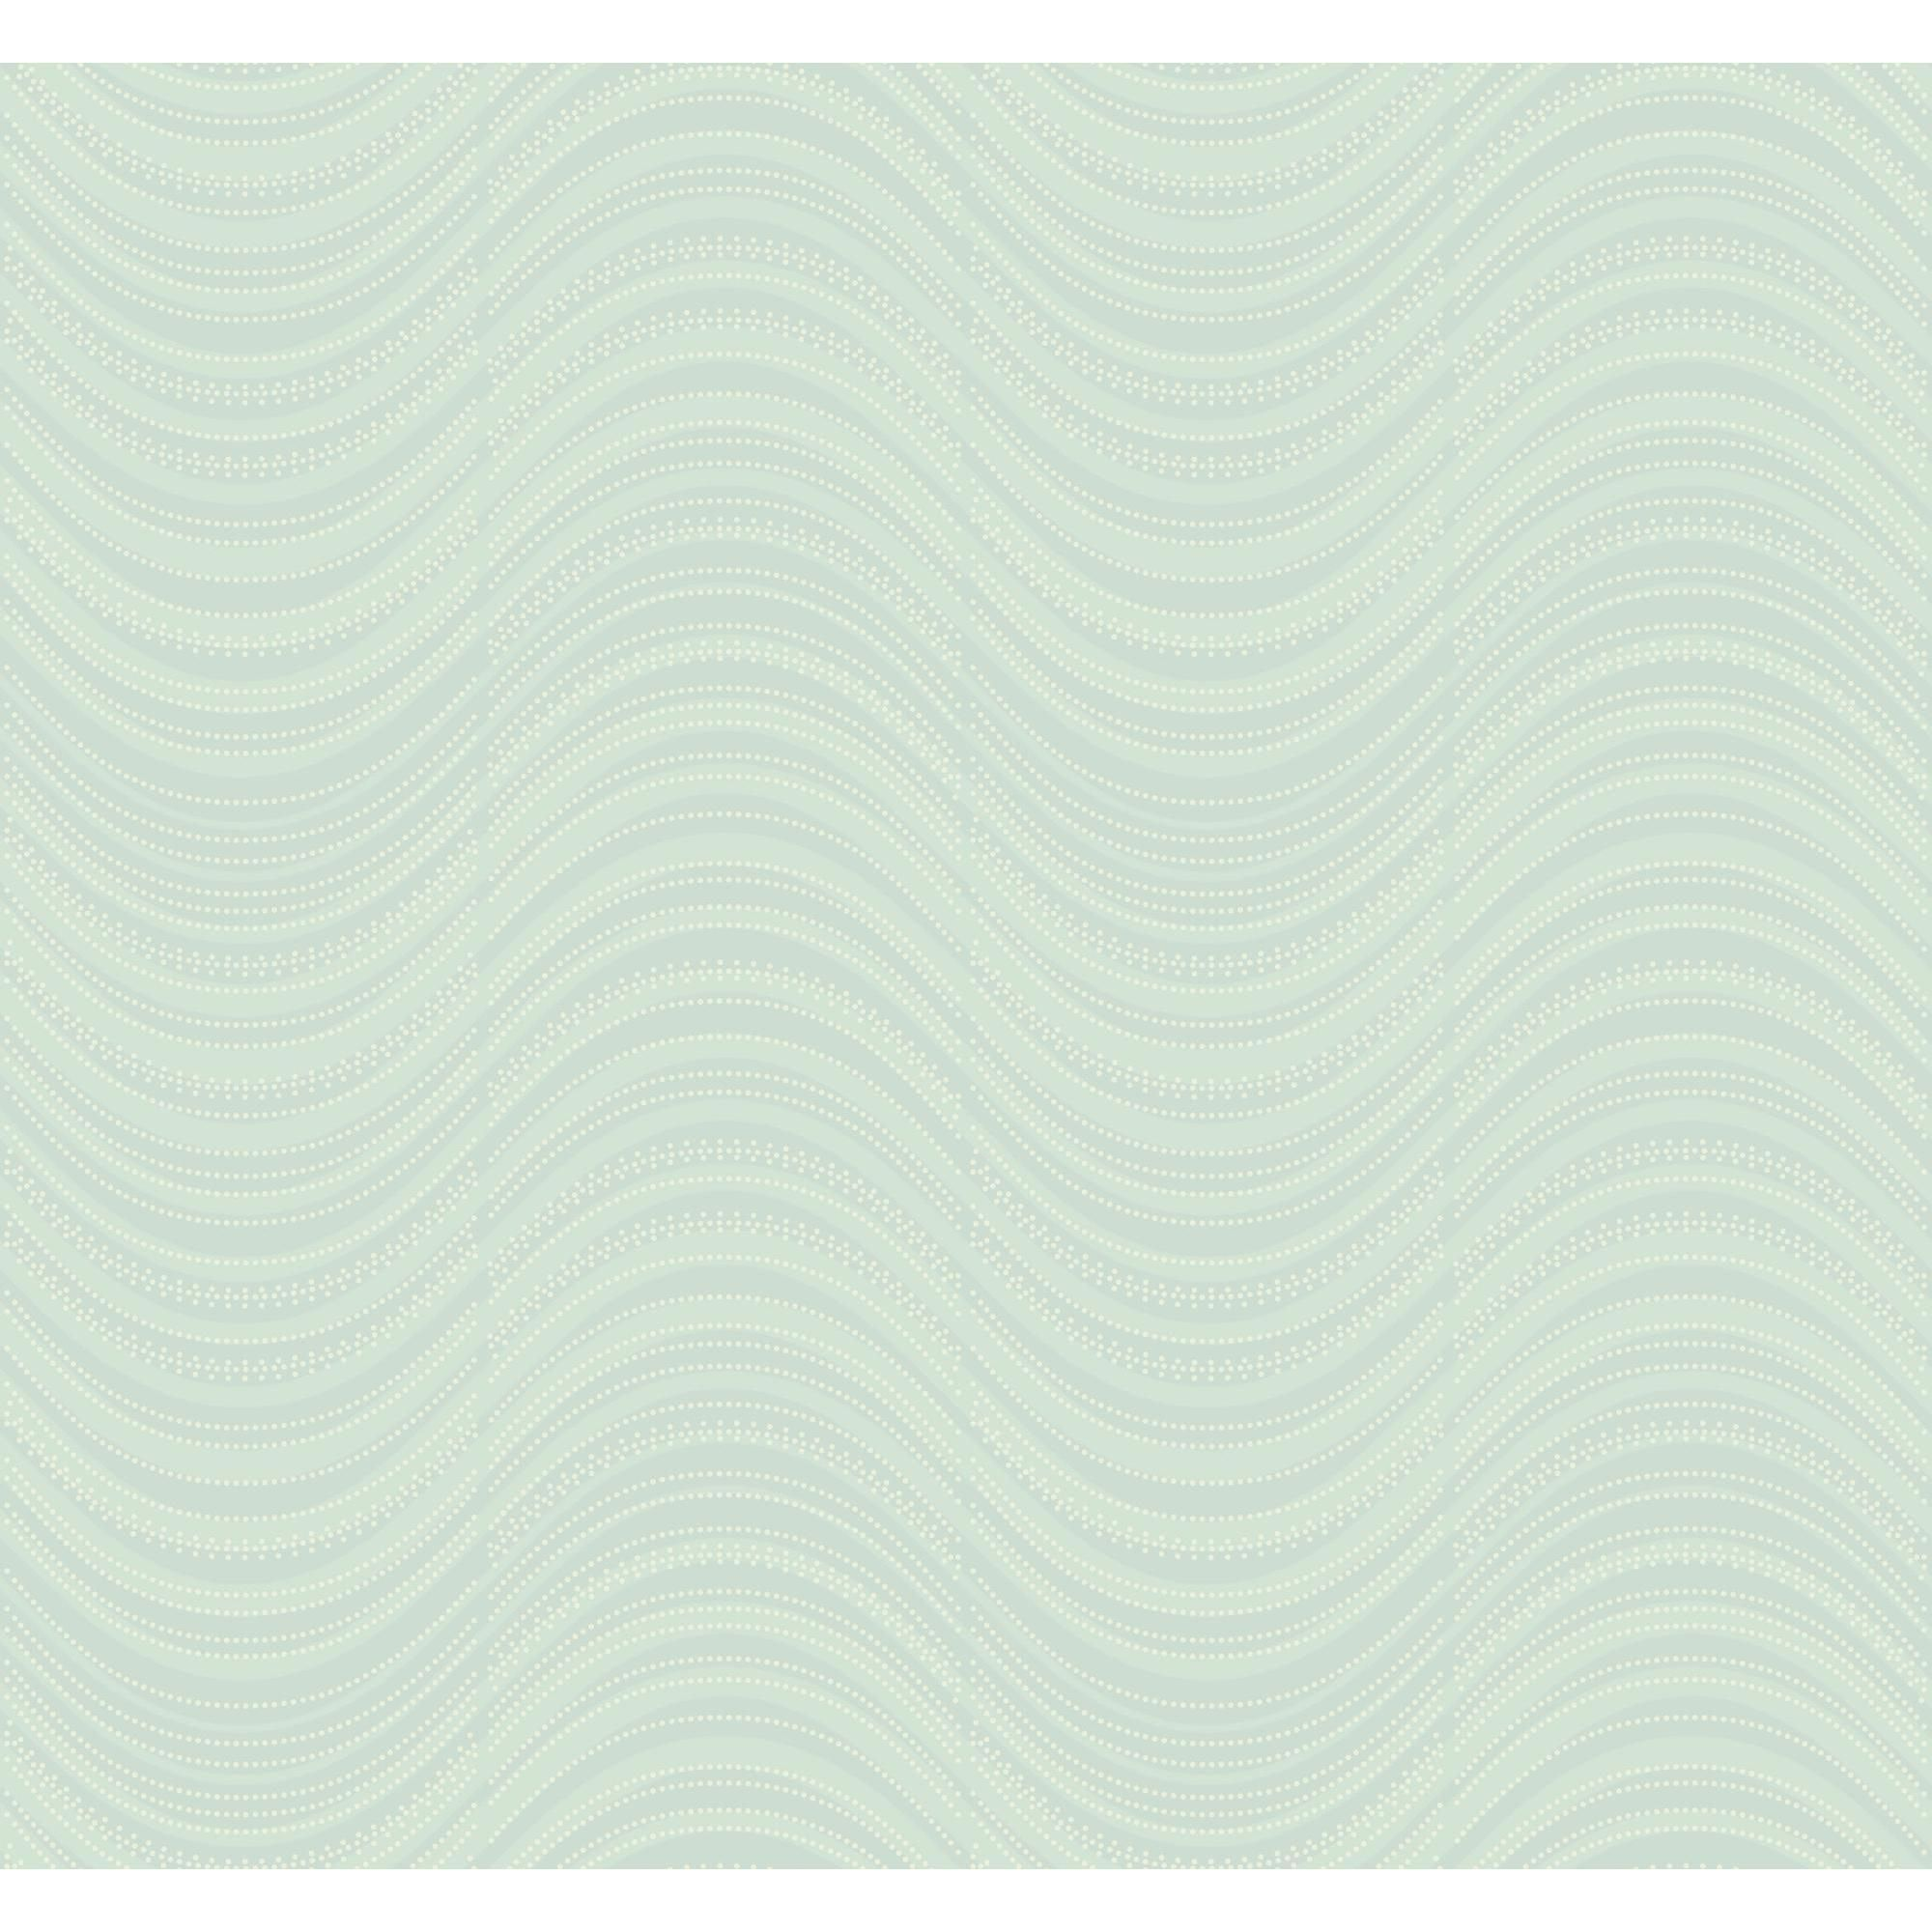 Kravet Design W337715 Wall coverings, Abstract